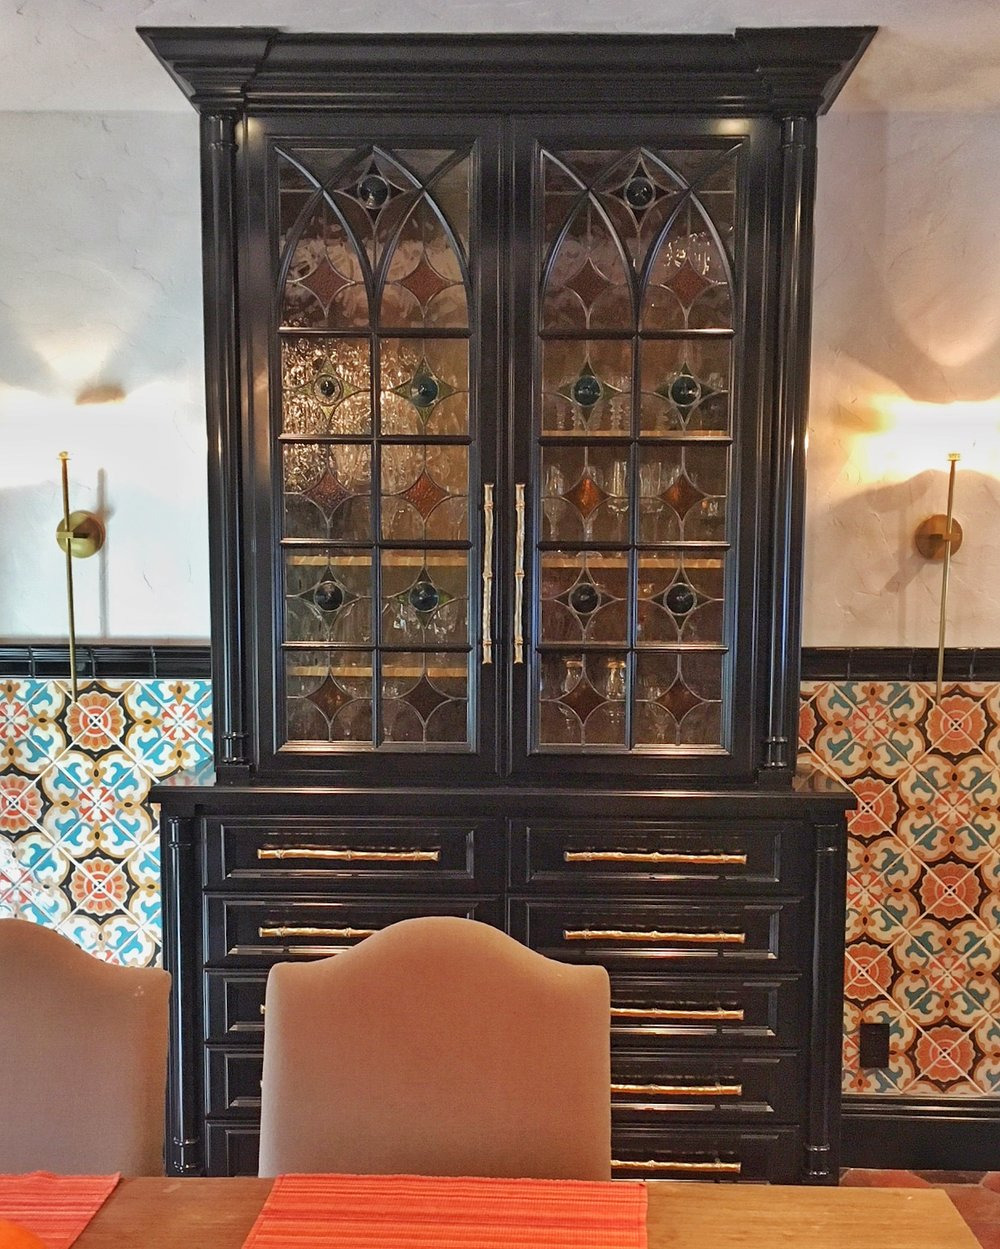 traditional pattern geometric classic design rondel spanish design gothic arched cabinet door leaded glass stained glass legacy glass atherton san jose menlo park san francisco california hutch spanish tile kitchen